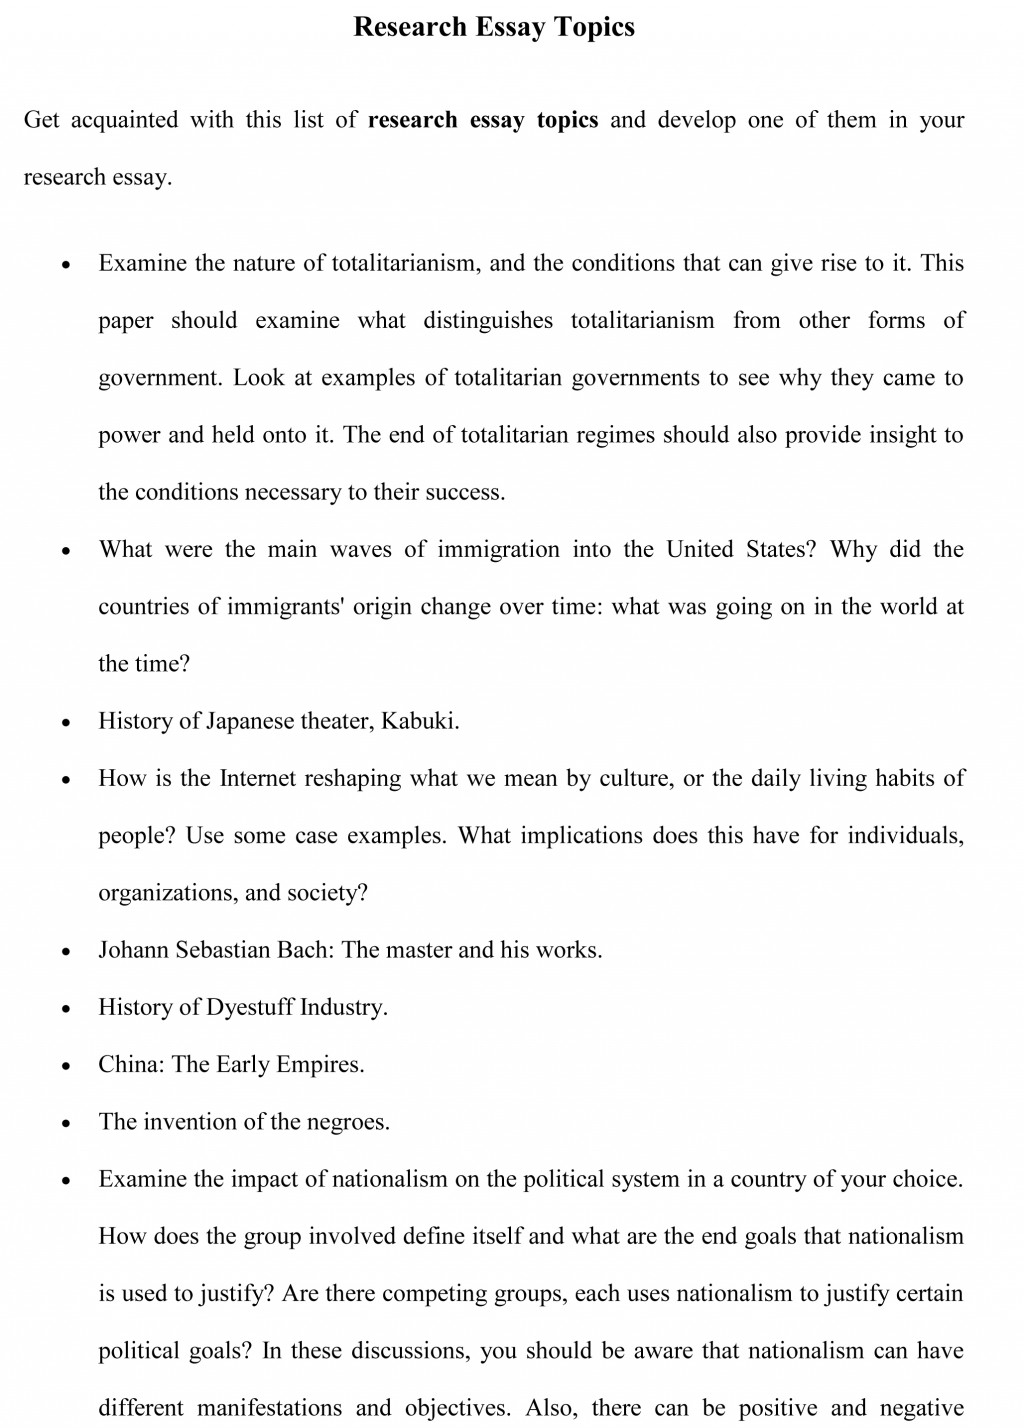 001 Literary Research Paper Topics Essay Exceptional Analysis Ideas Large